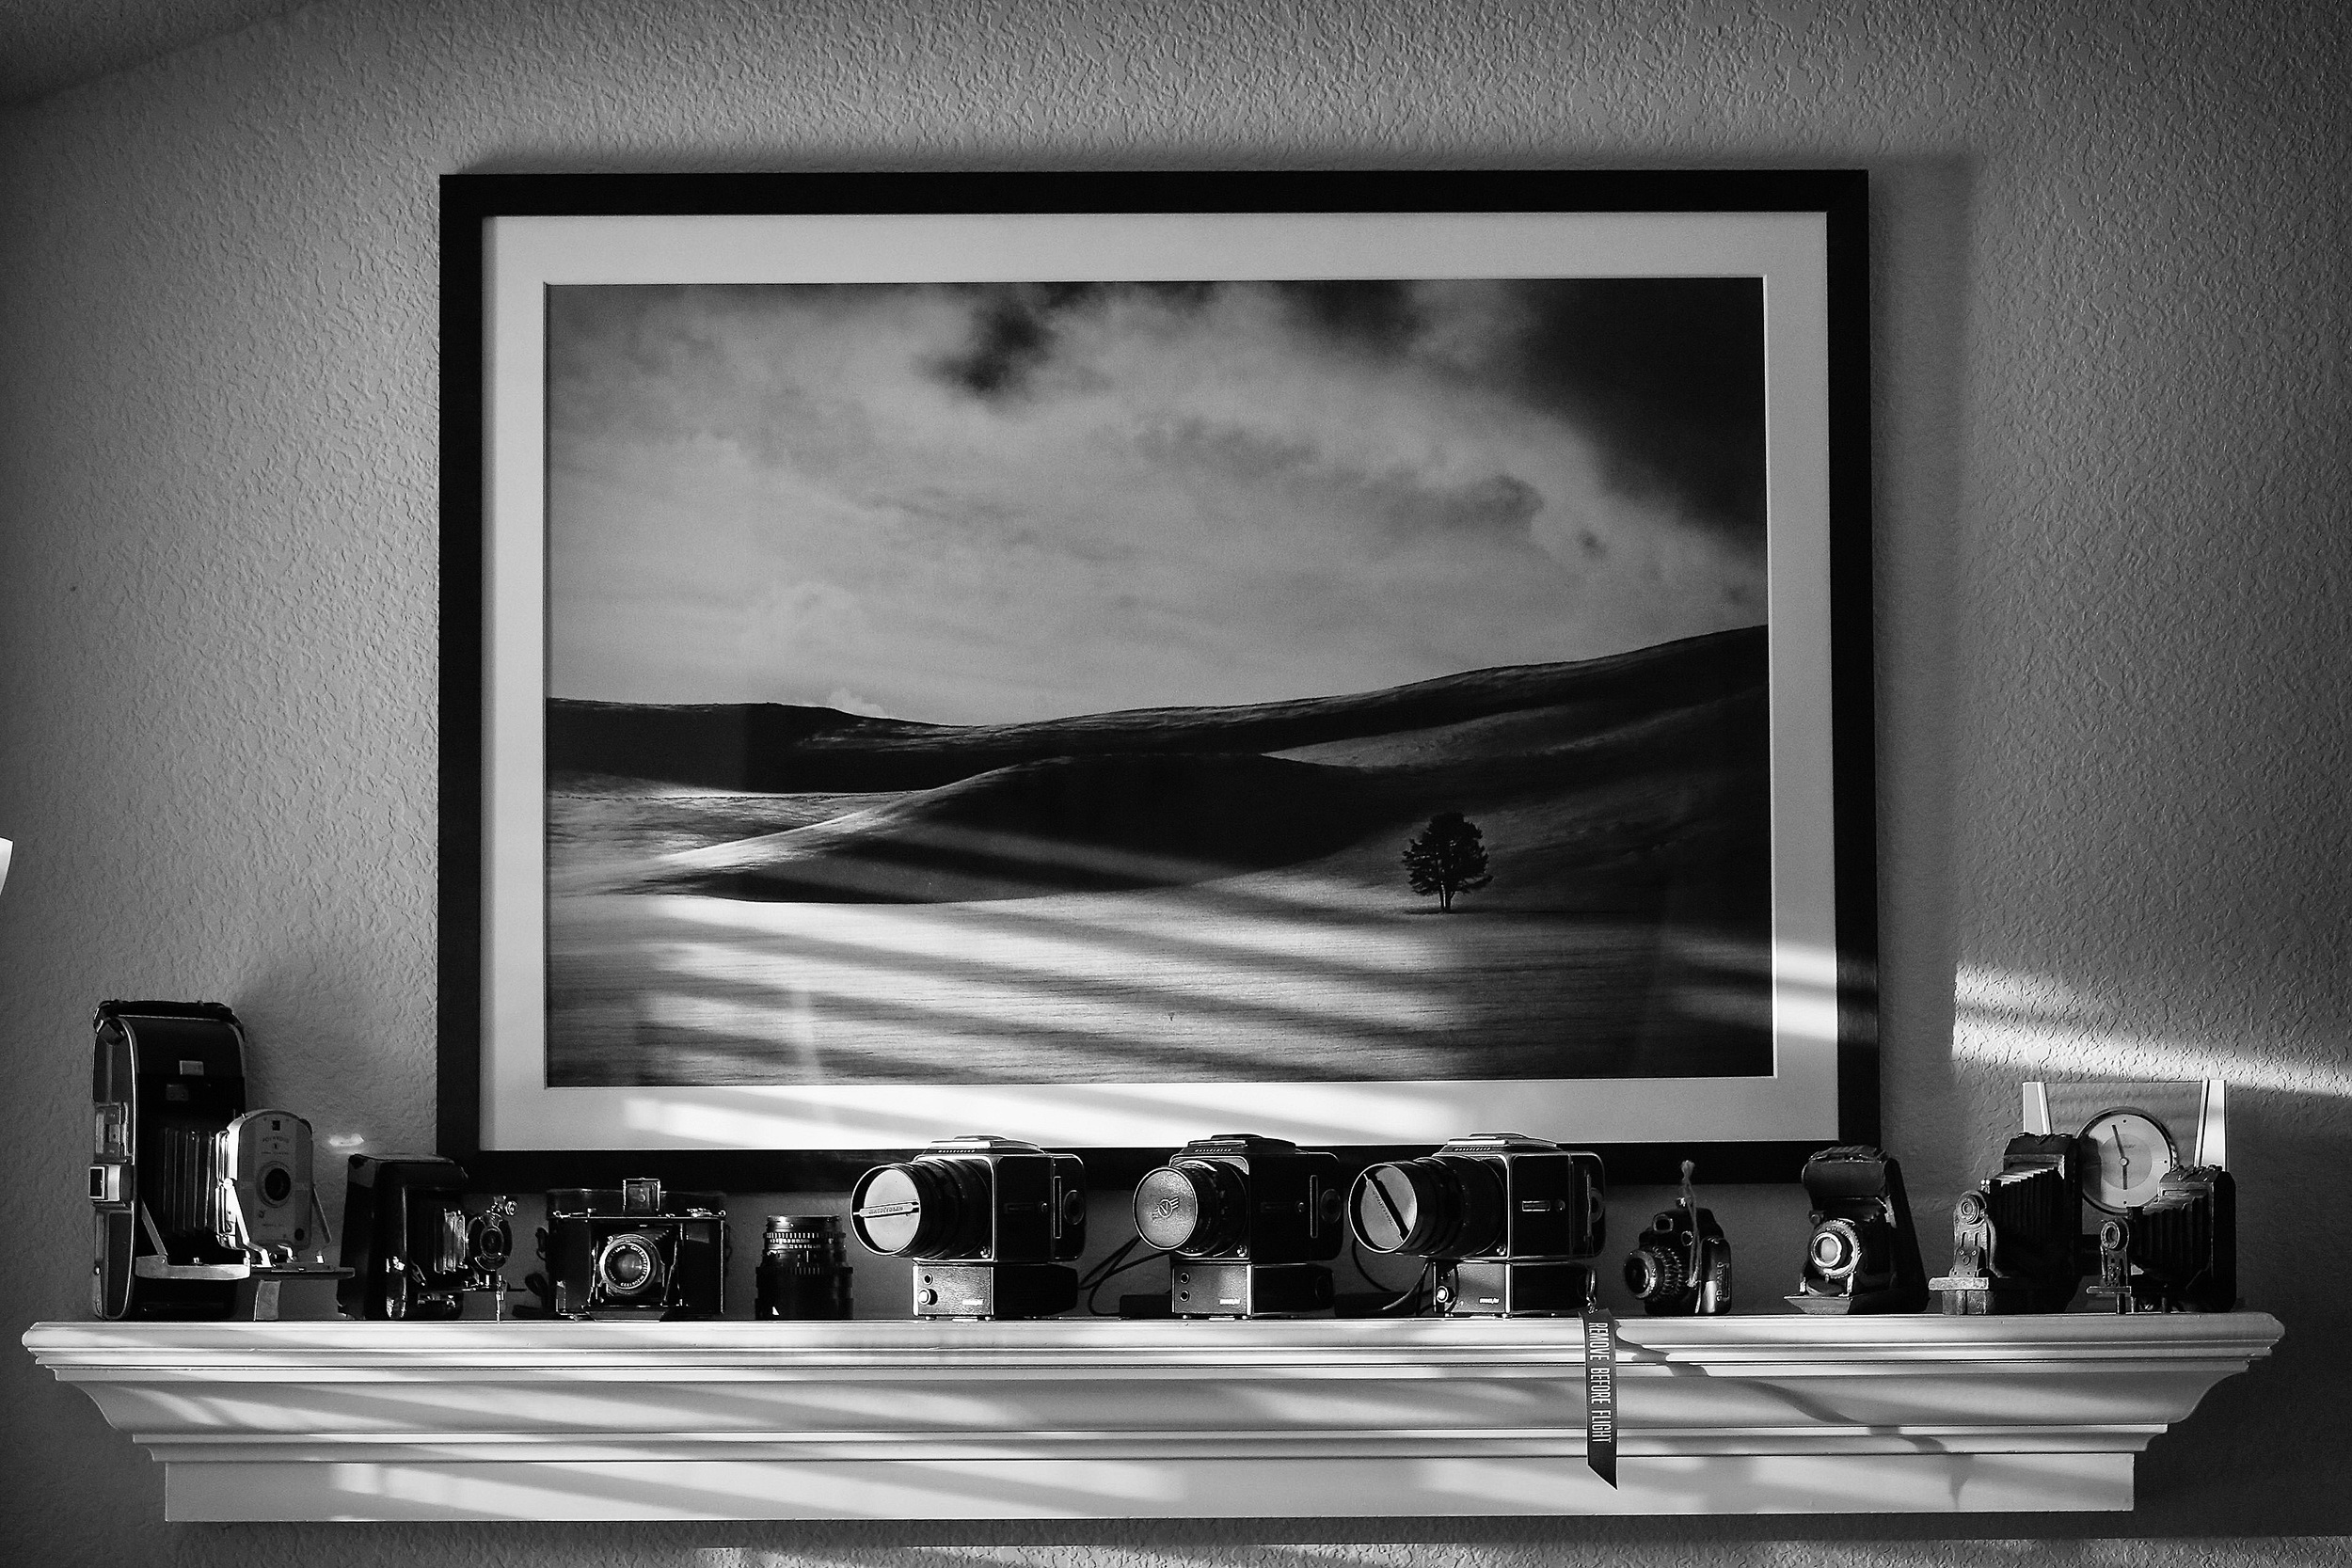 The entire subject in this image of my mantle above the fireplace is an example of Subject Contrast resulting in a successful image.